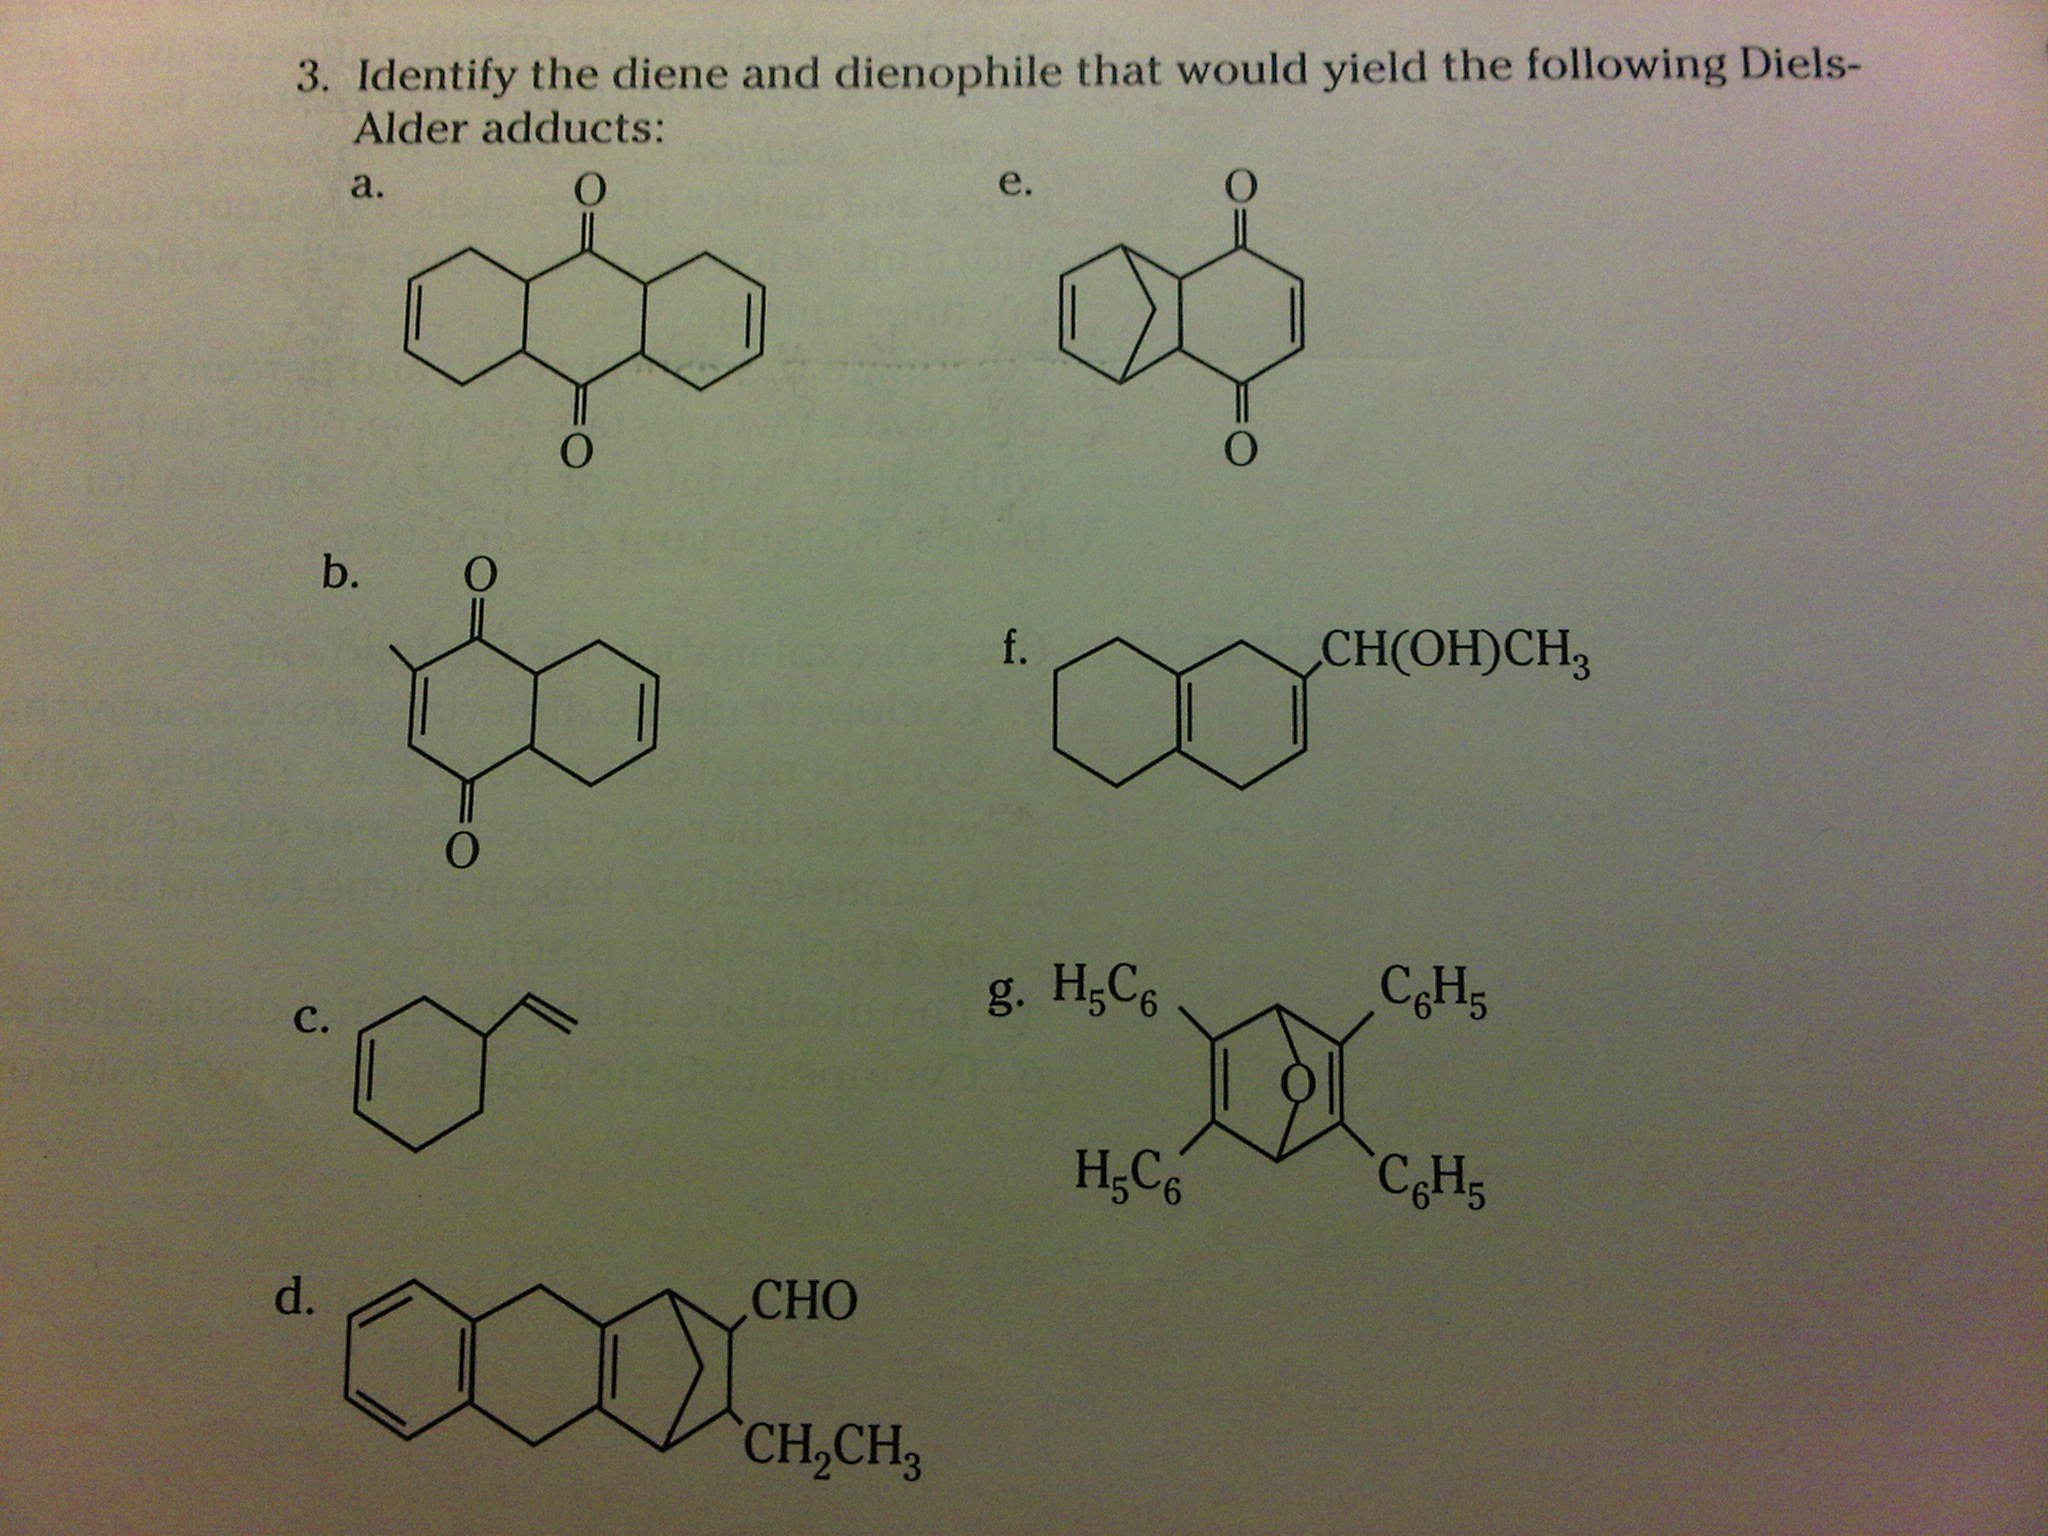 an analysis of an unknown conjugated diene through diels alder reaction In a cycloaddition reaction, a 1,3-diene and melting point analysis the diels-alder anhydride produced of diels-alder reaction could have.